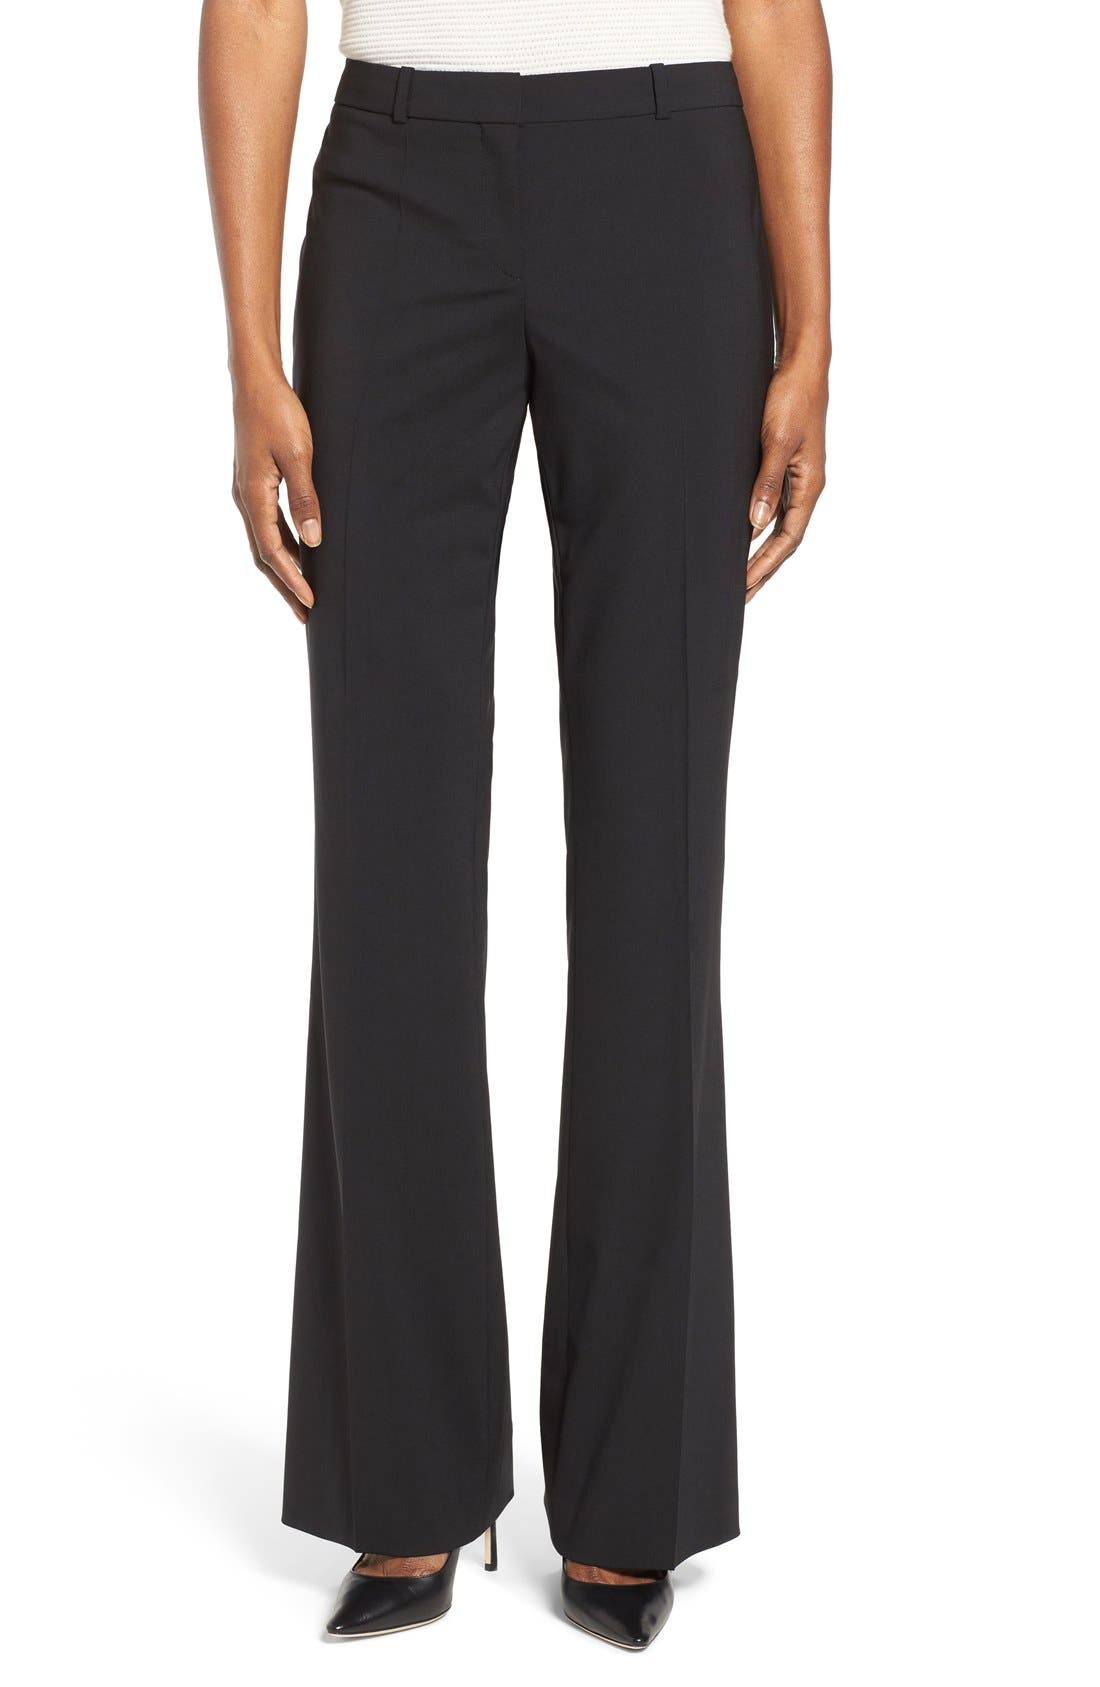 Tulea3 Tropical Stretch Wool Trousers,                         Main,                         color, Black